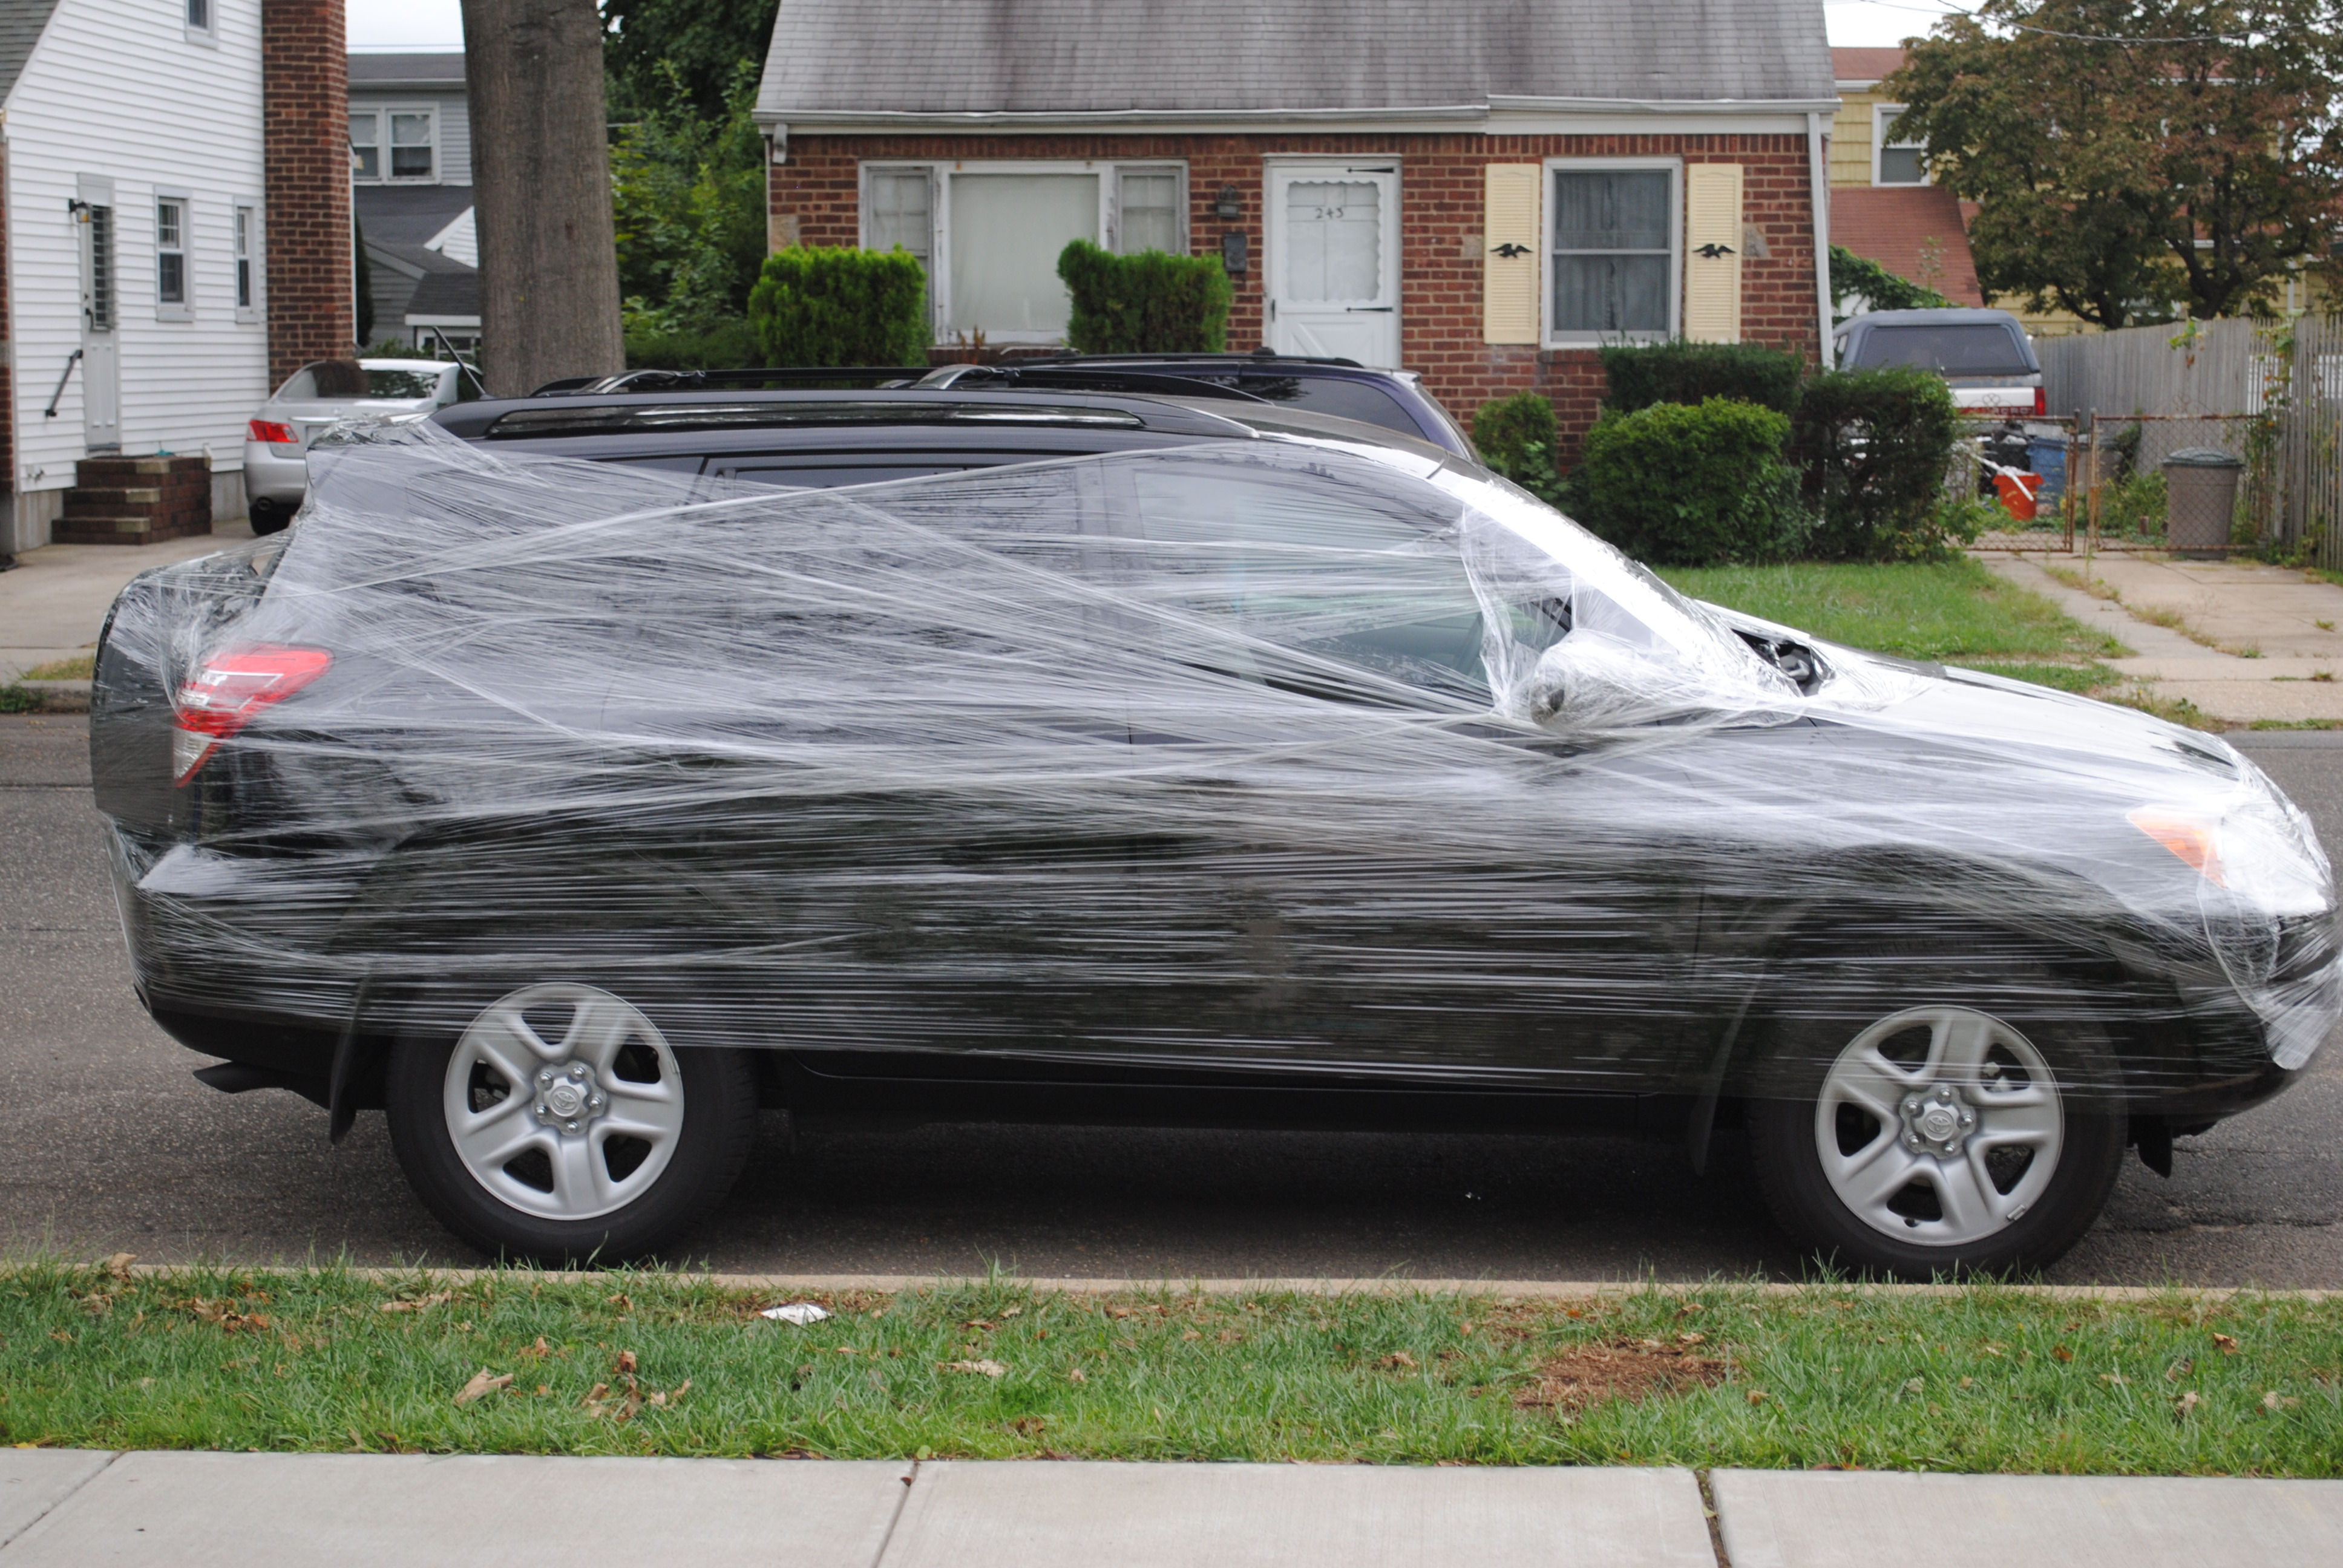 Plastic Wrap Car >> Saran Wrapped Car The Arts In New York City